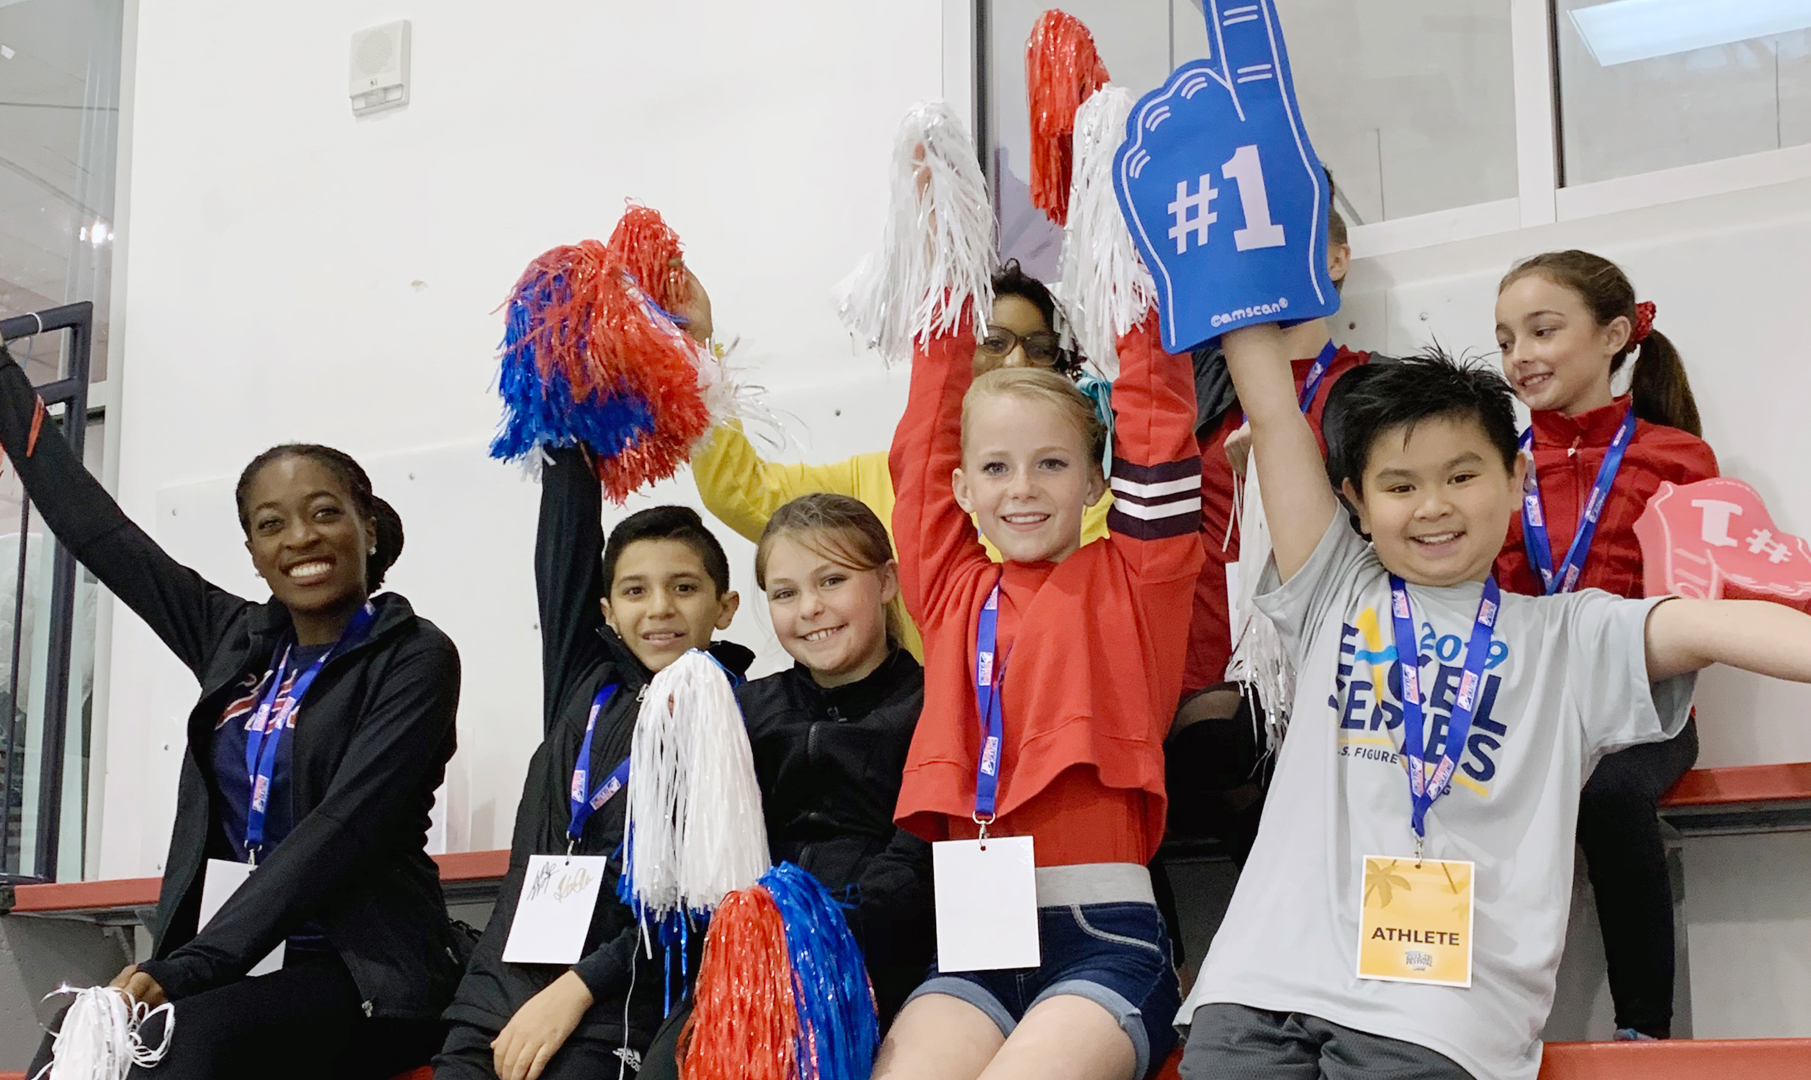 Athletes cheer on skaters at a competition.